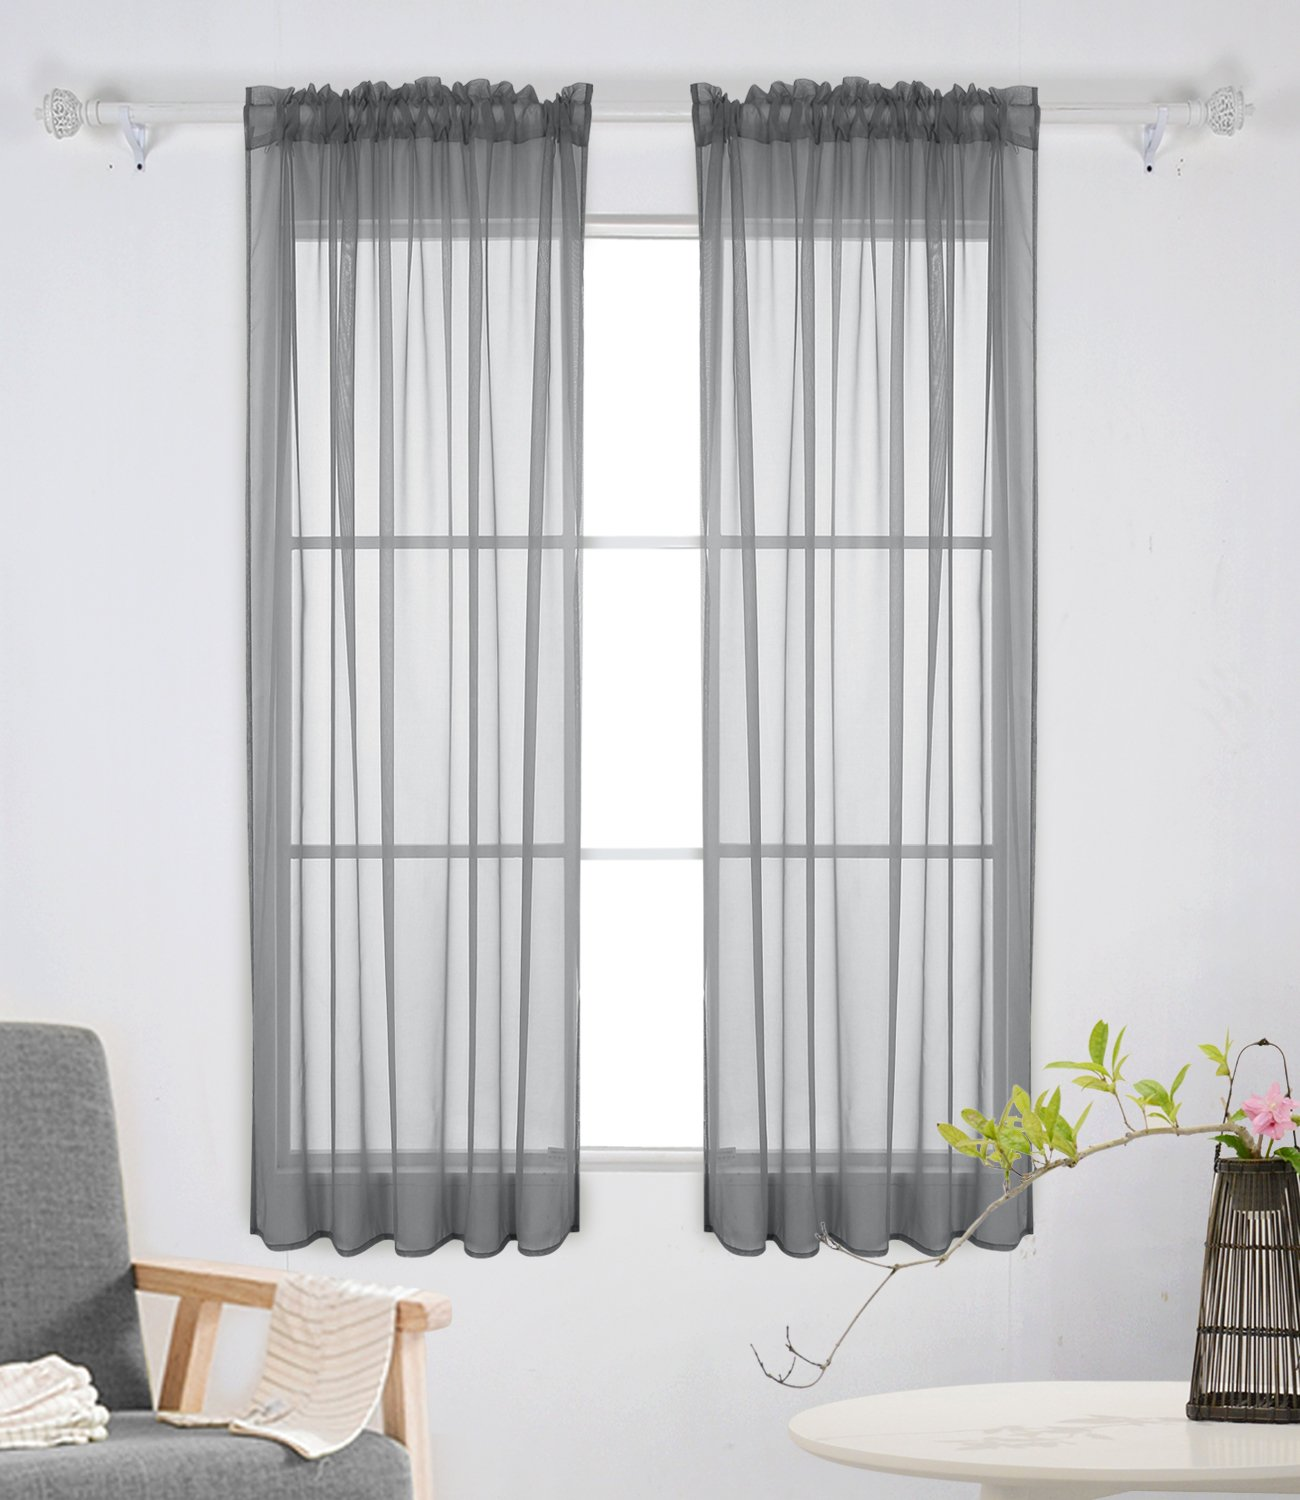 Deconovo Home Decorative Sheer Curtains Window Curtains Sheer Panels Voile Curtains for Dining Room